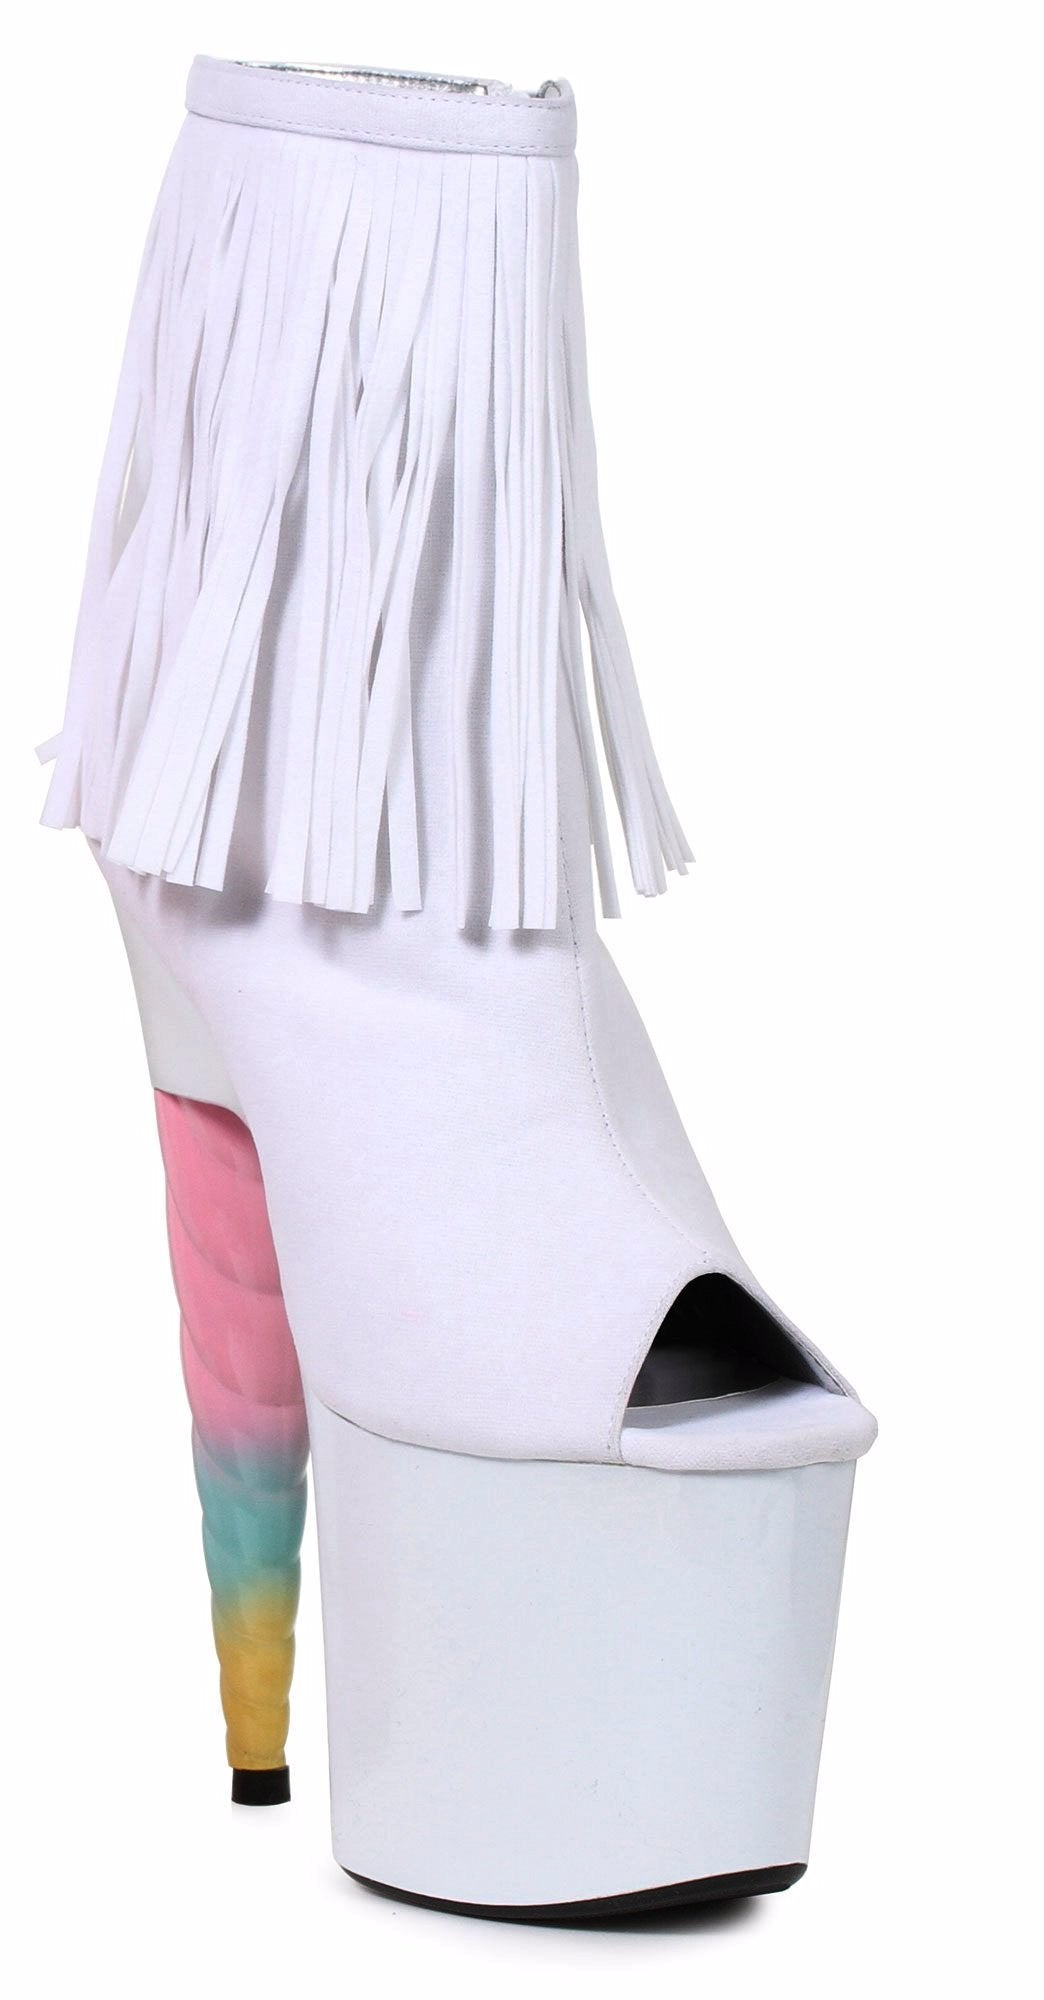 da5ea05d943 White 7 Inch Unicorn Heel Platform Ankle Boot With Fringe-Stripper Boots